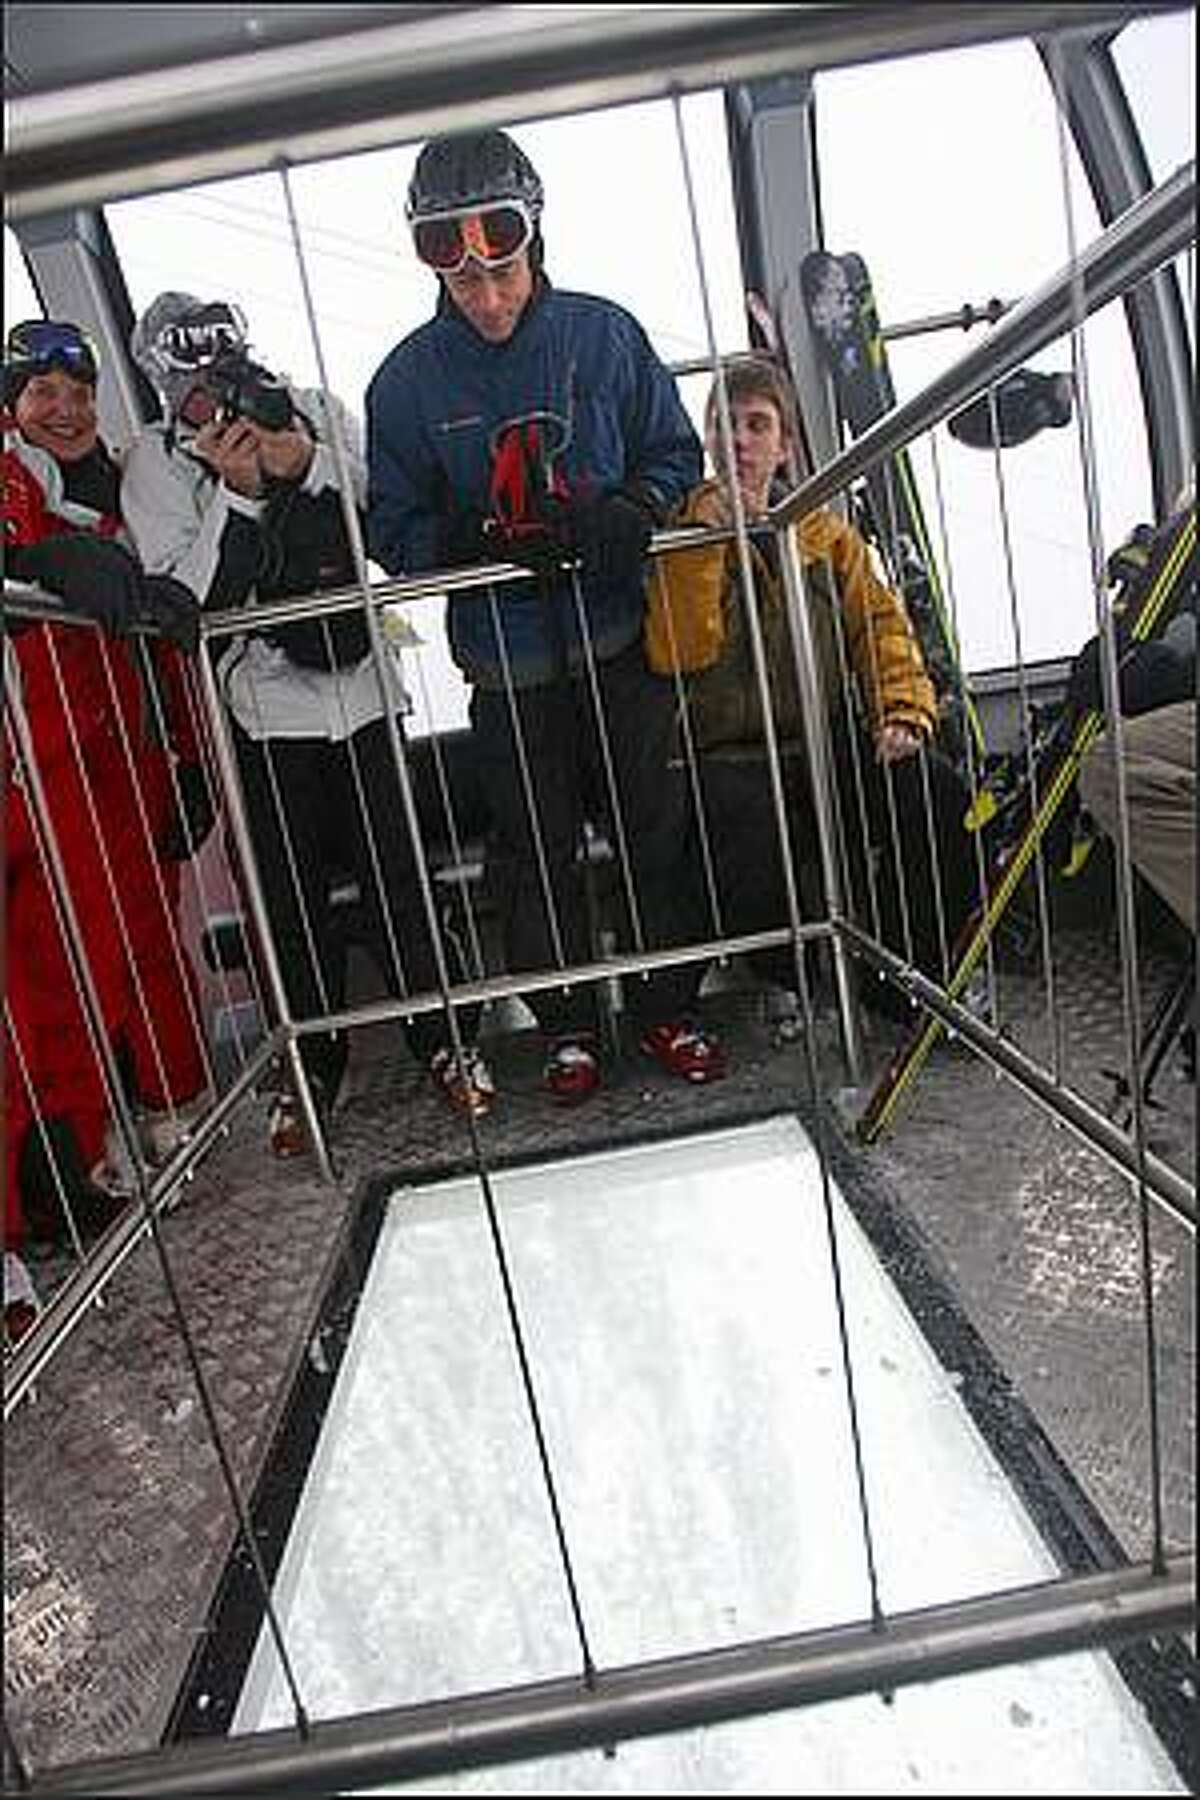 Gondola riders Bob Griffiths, center, and son Andrew, right, from Whistler, enjoy the view from one of two glass-bottomed cabins on the Peak2Peak Gondola in Whistler, British Columbia.